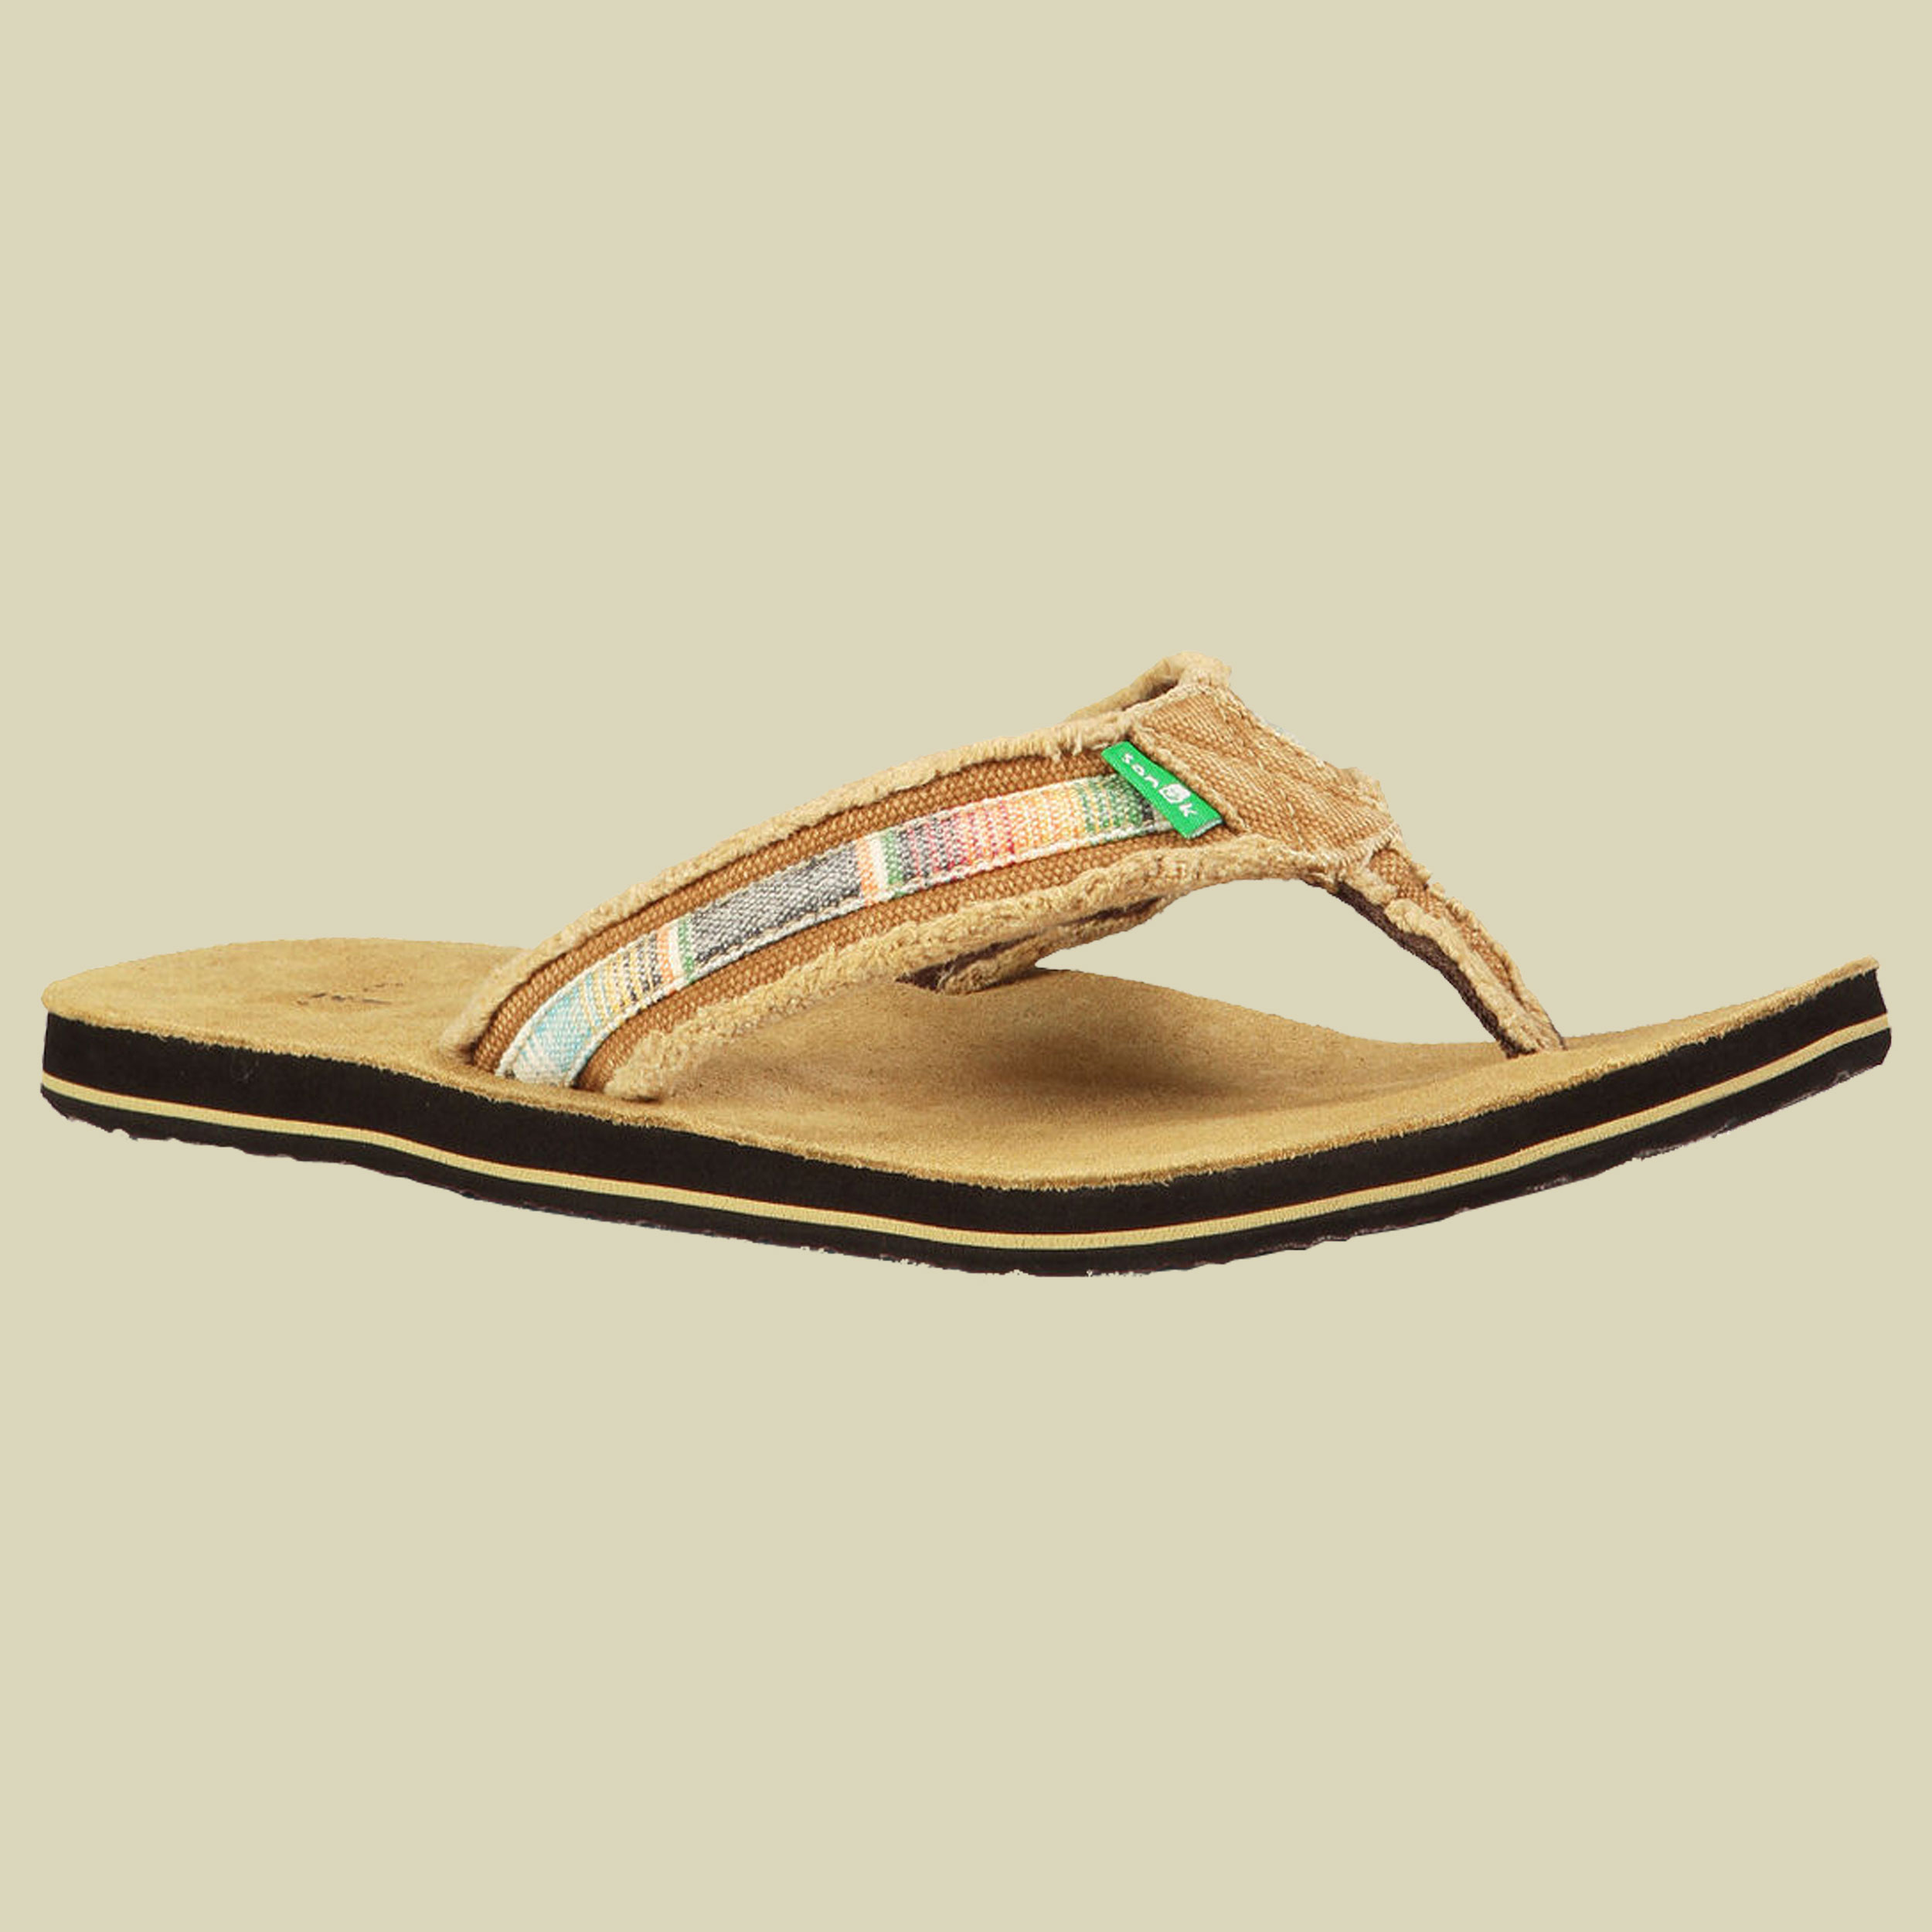 Sanuk Fraid SO Sandals Men Zehentrenner-Sandale Herren Größe UK 7 tan multi